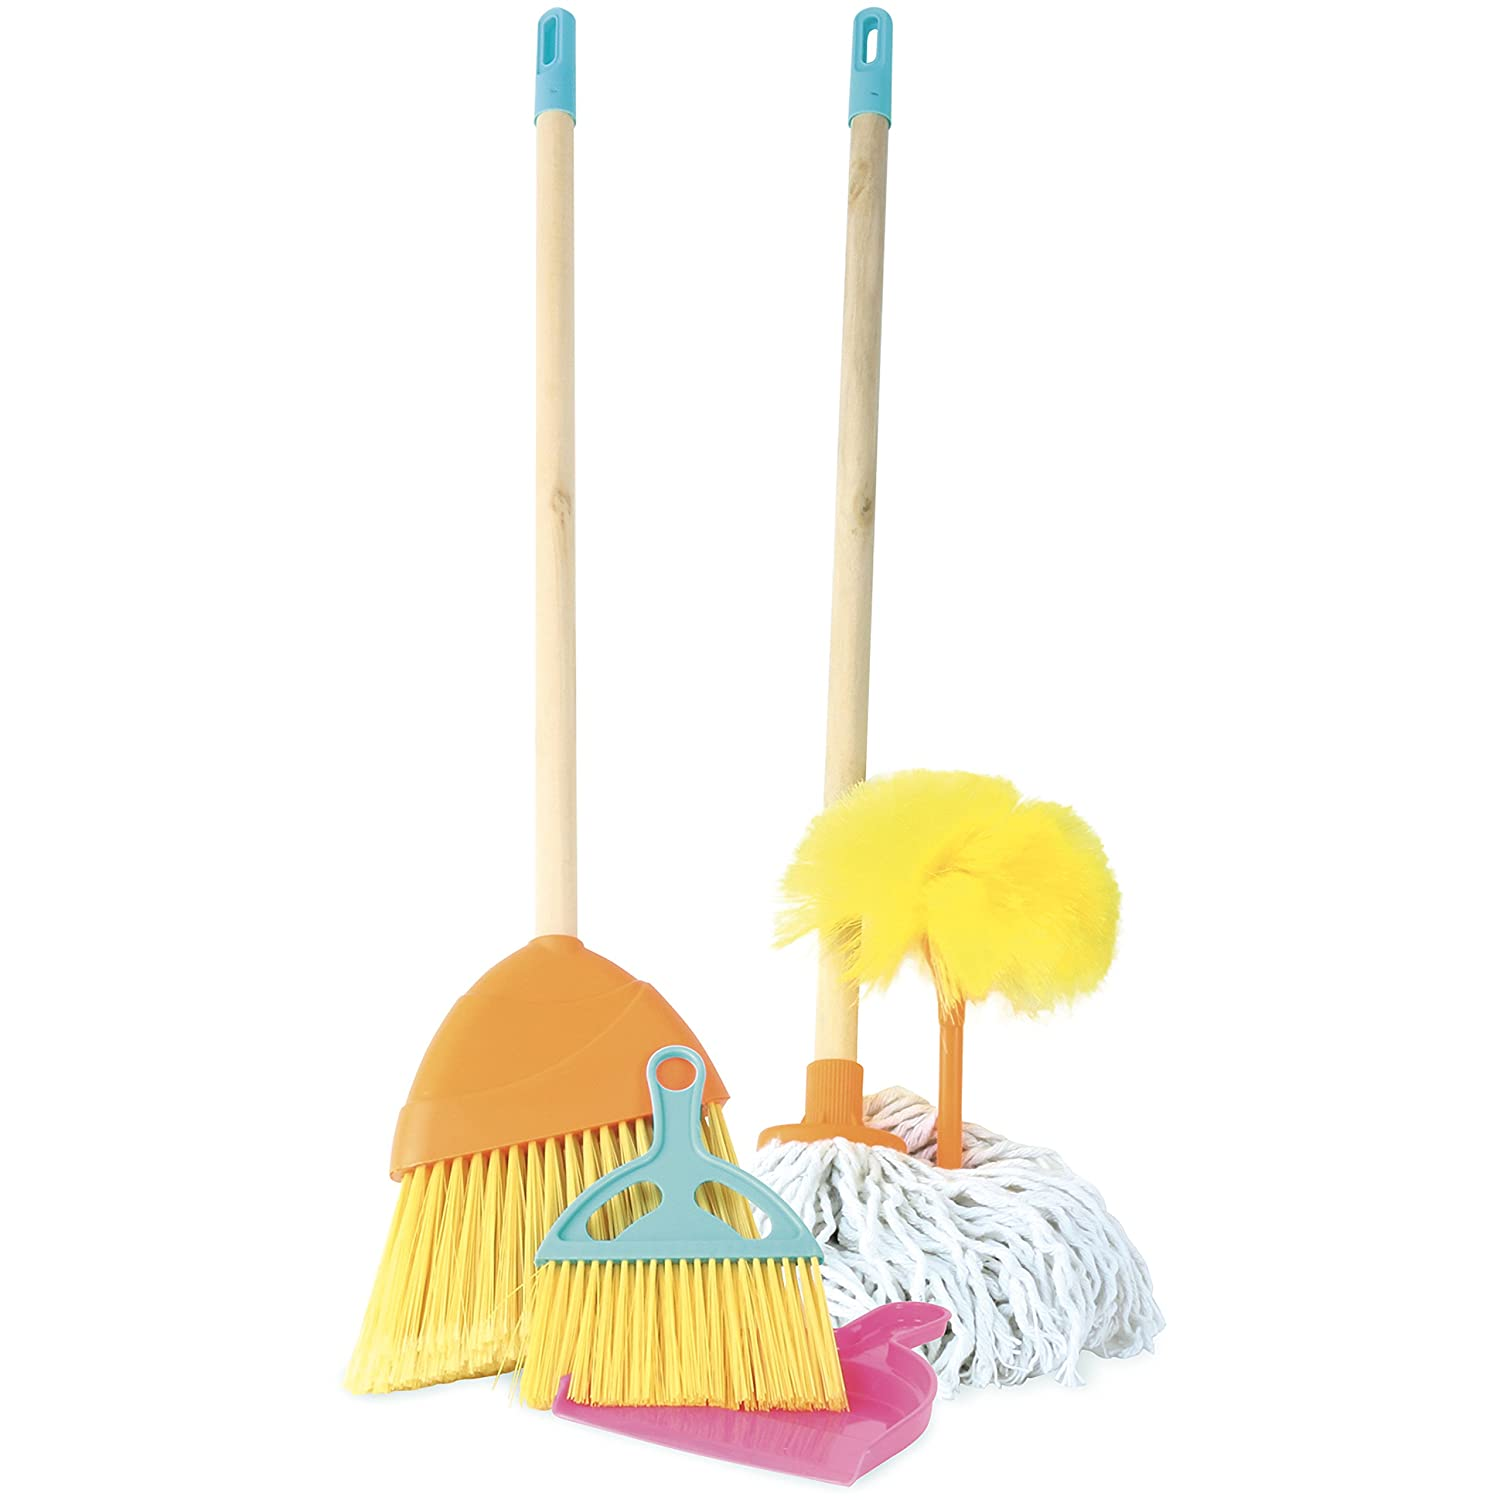 Vilac Large Cleaning Set 6198 B004YWH8RS